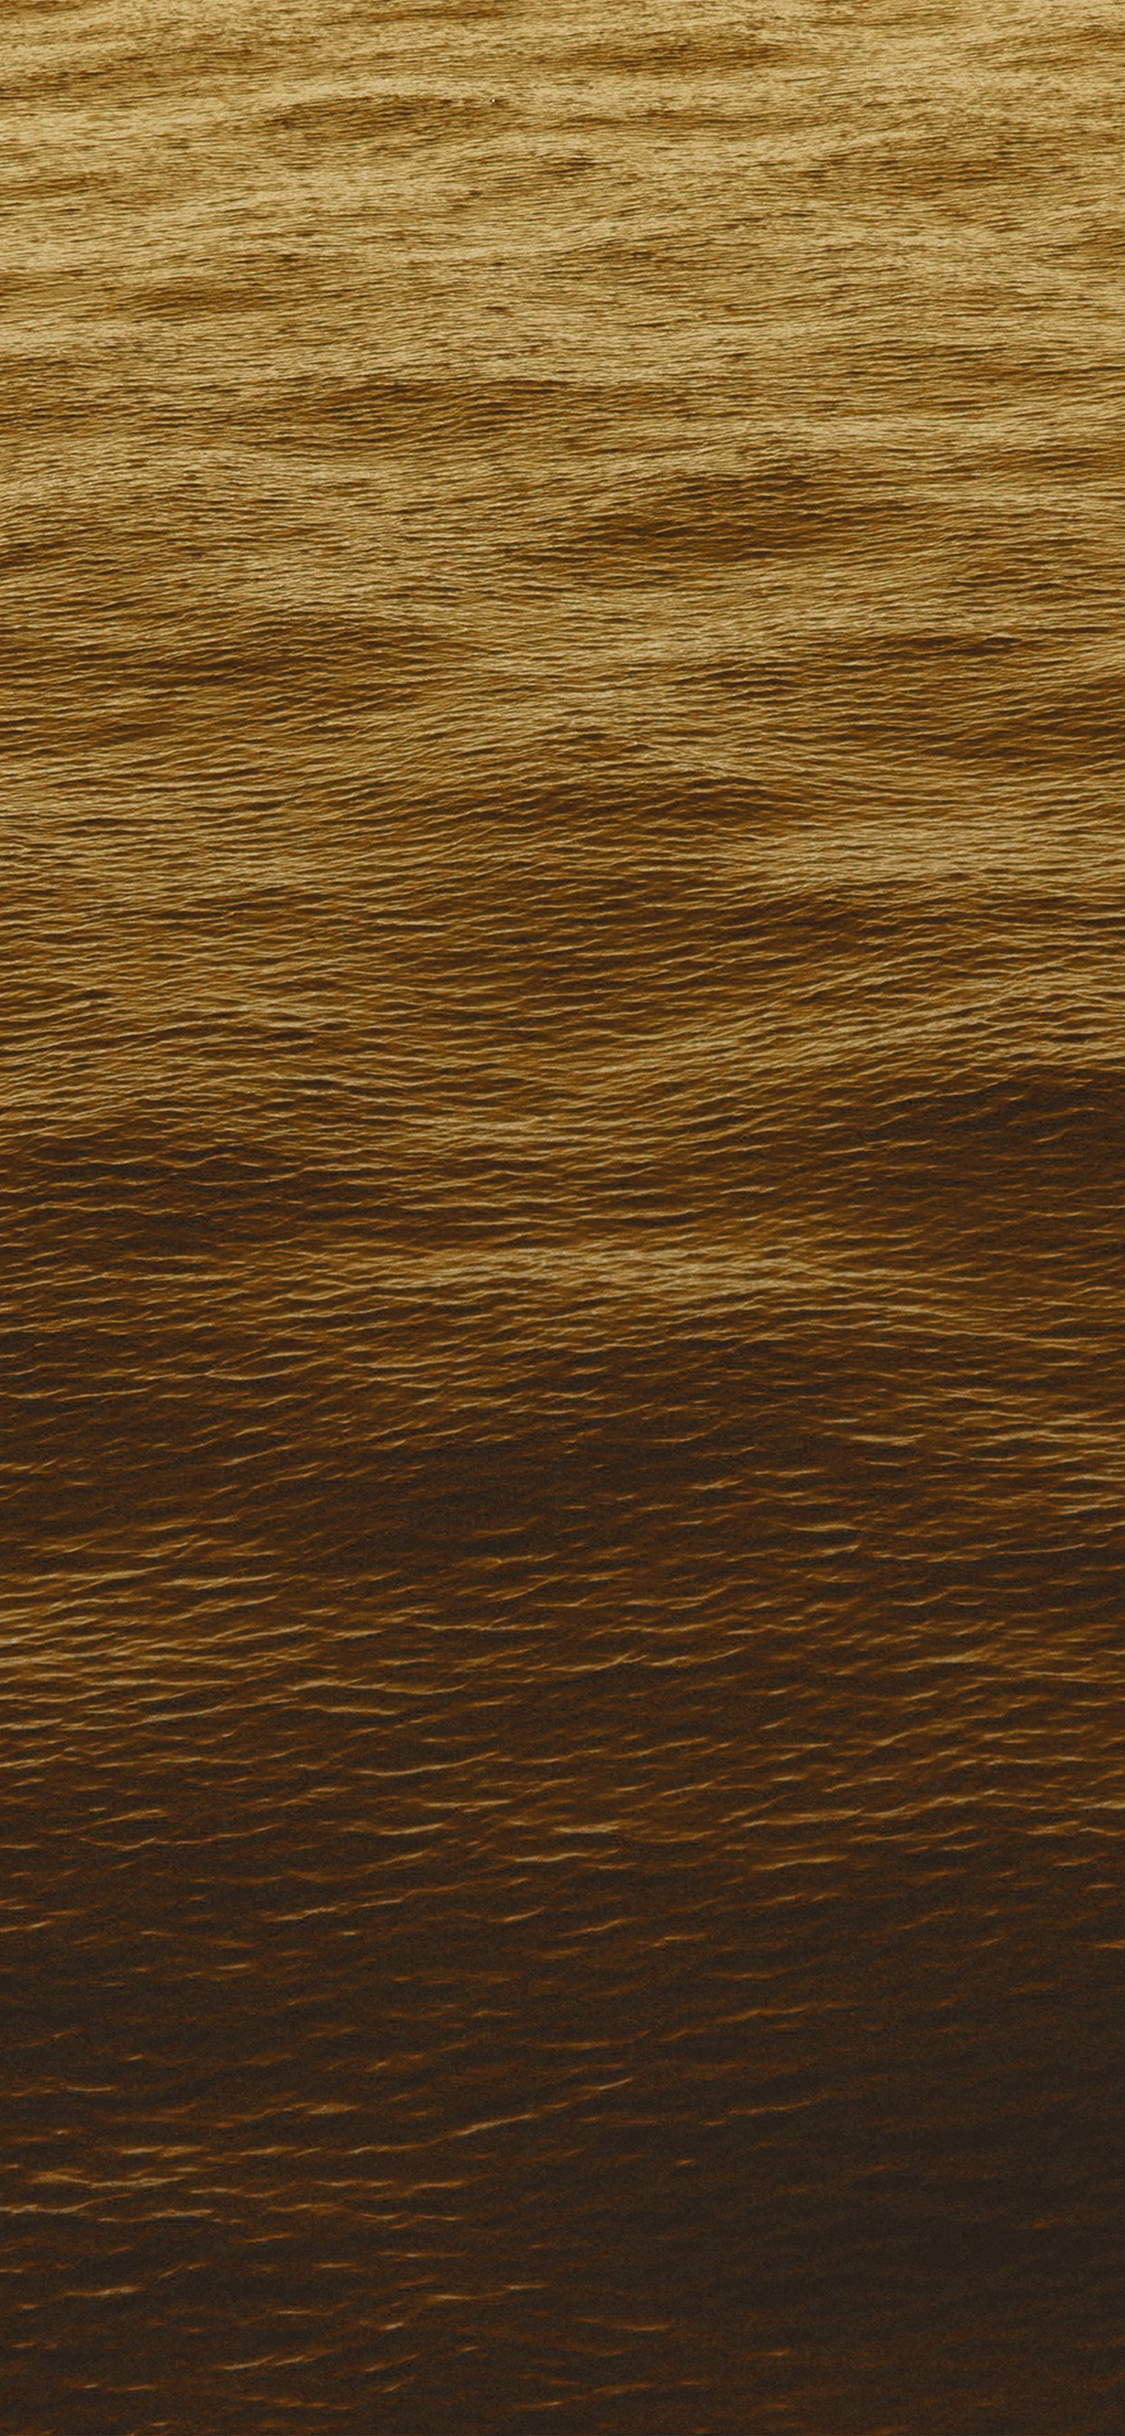 Iphone 11 Pro Gold 1125x2436 Wallpaper Teahub Io